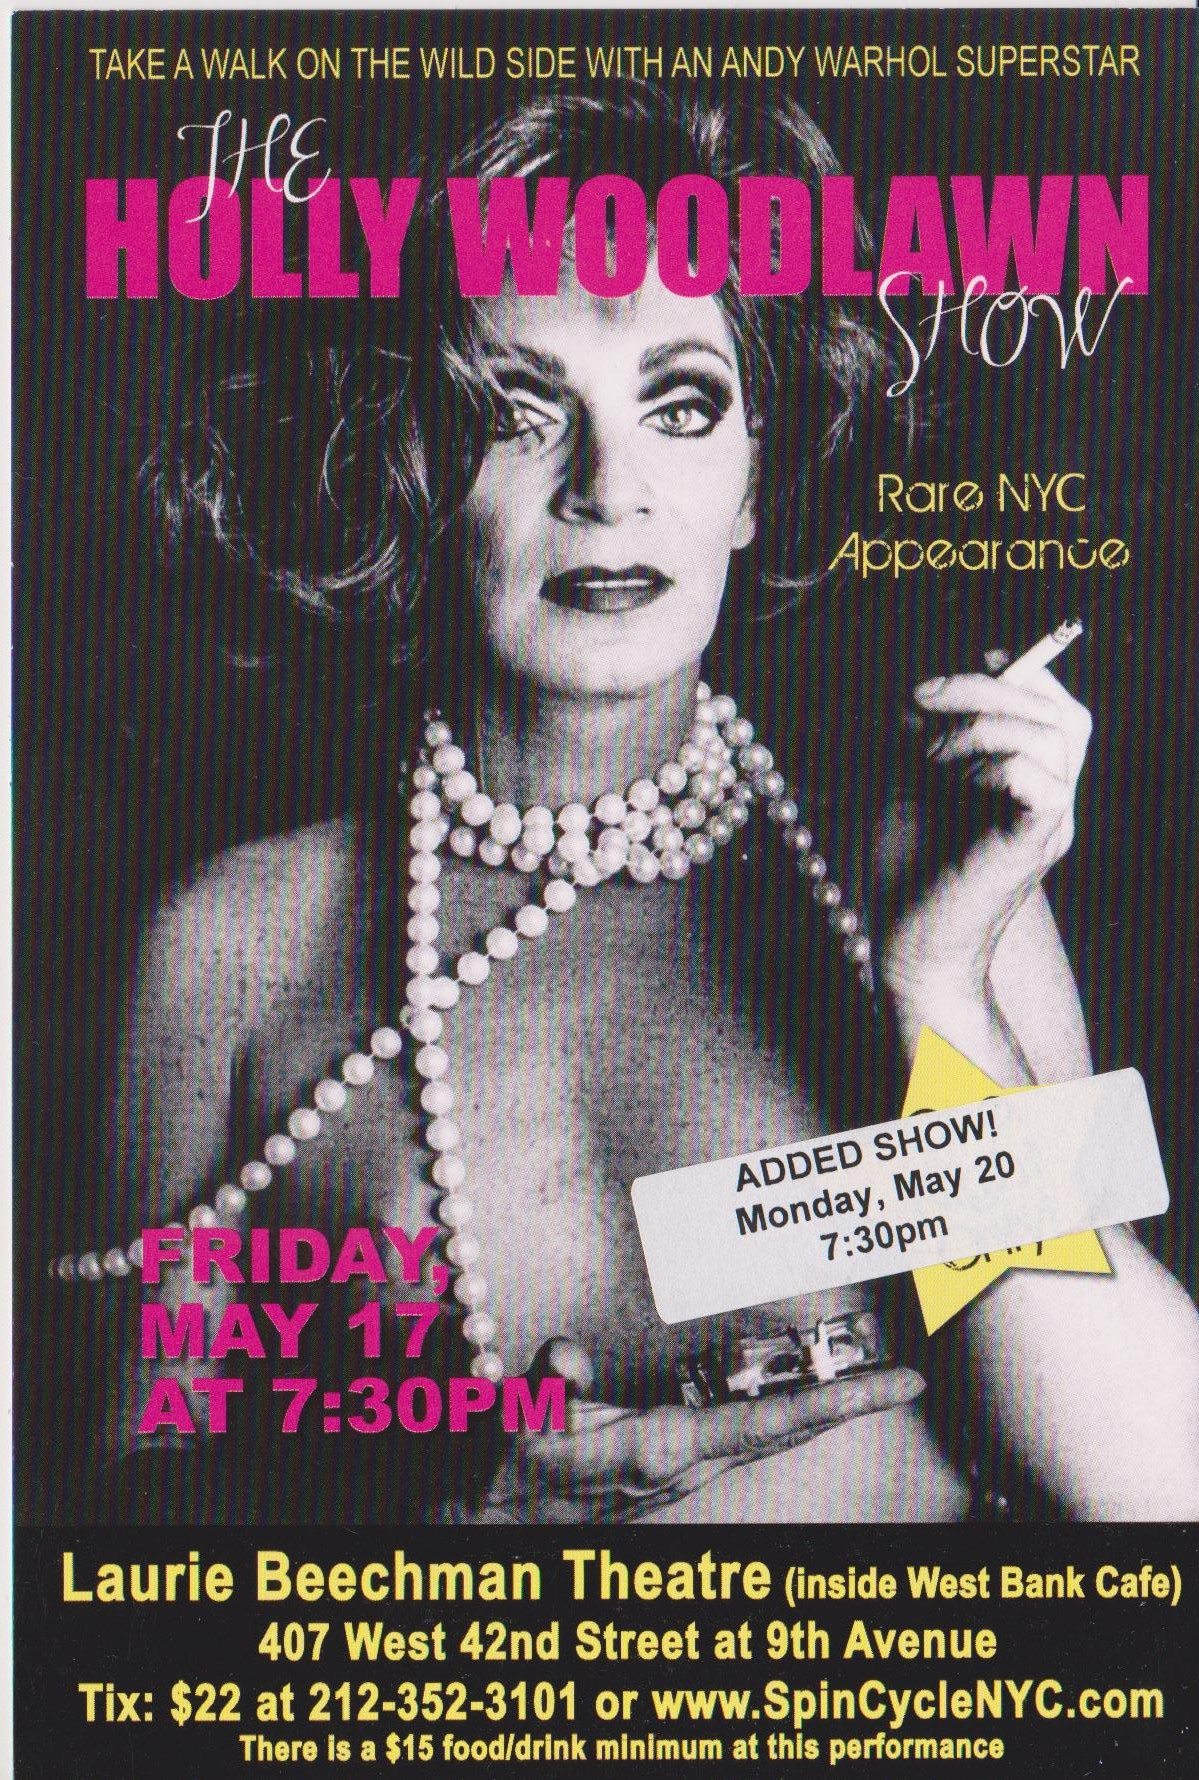 Holly Woodlawn 1-night-only